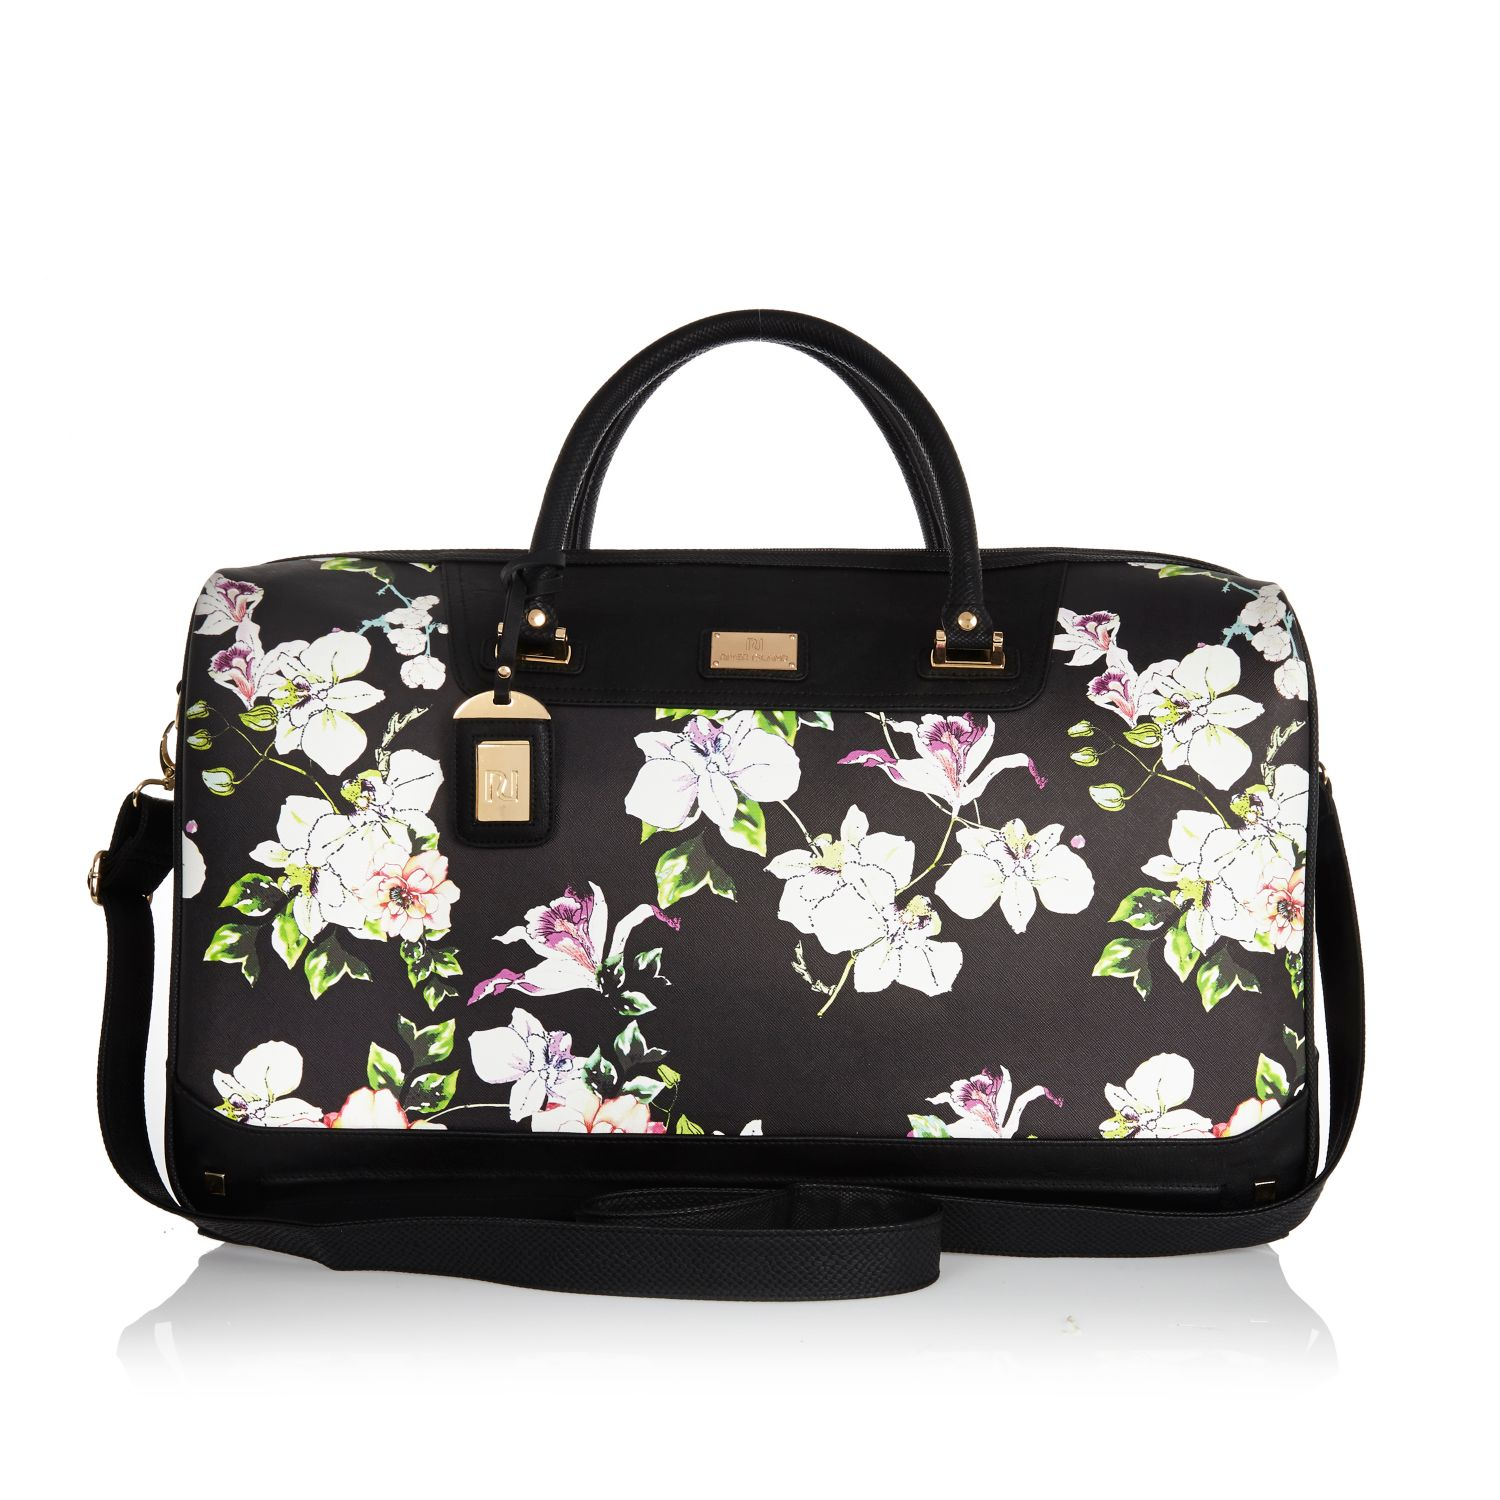 River island Black Floral Print Weekend Bag in Black | Lyst